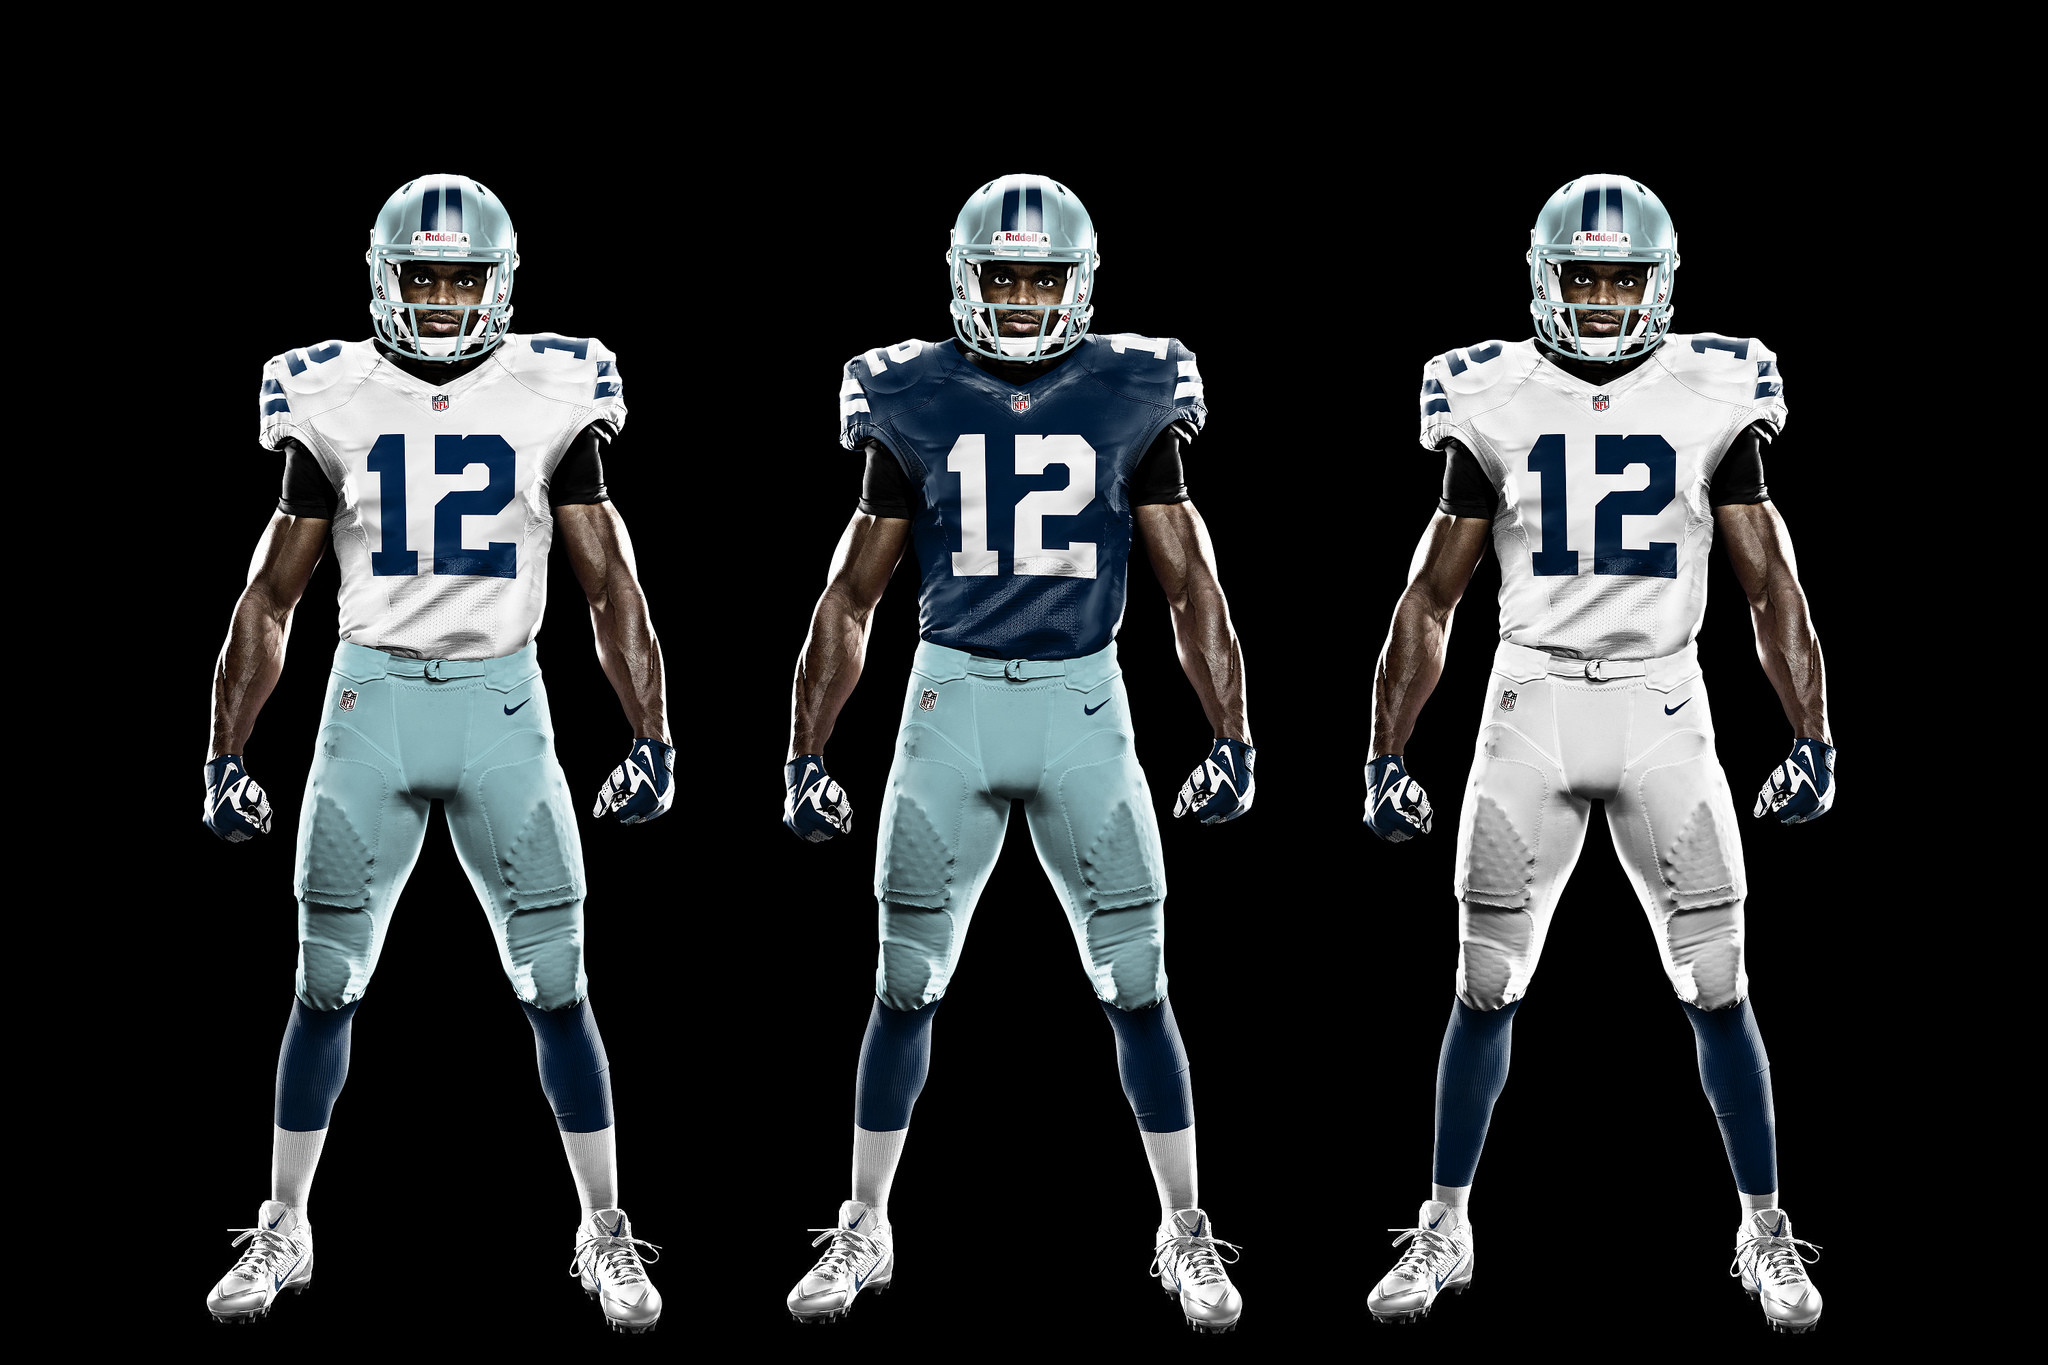 2048x1365 Dallas Cowboys Player Wallpaper.